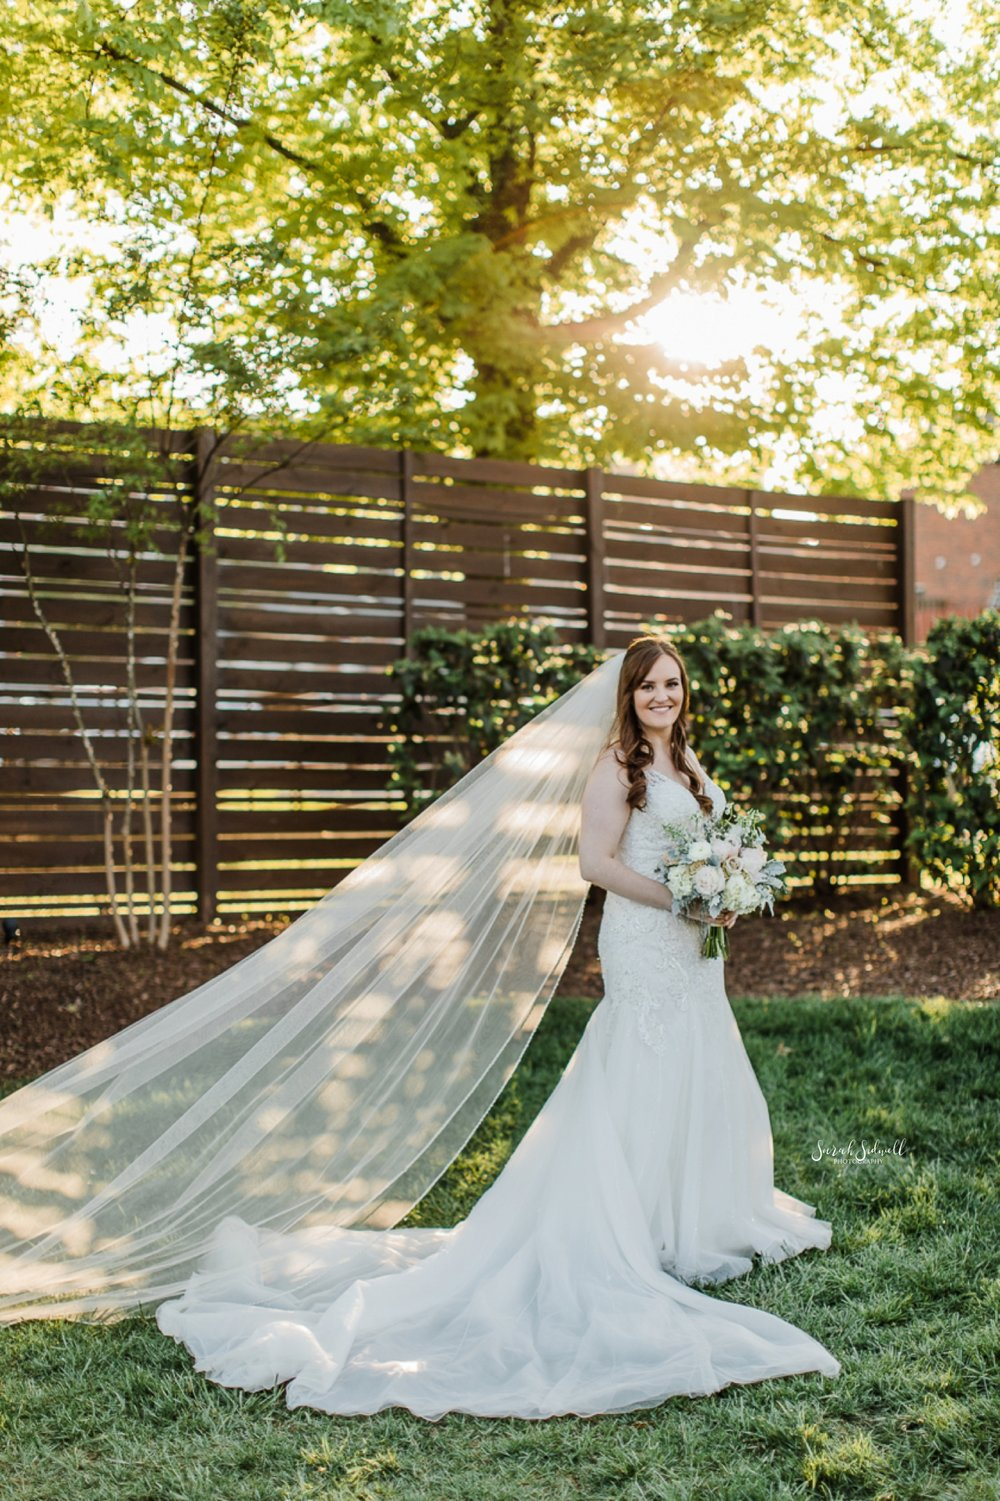 A bride poses for her Nashville Wedding Photos.